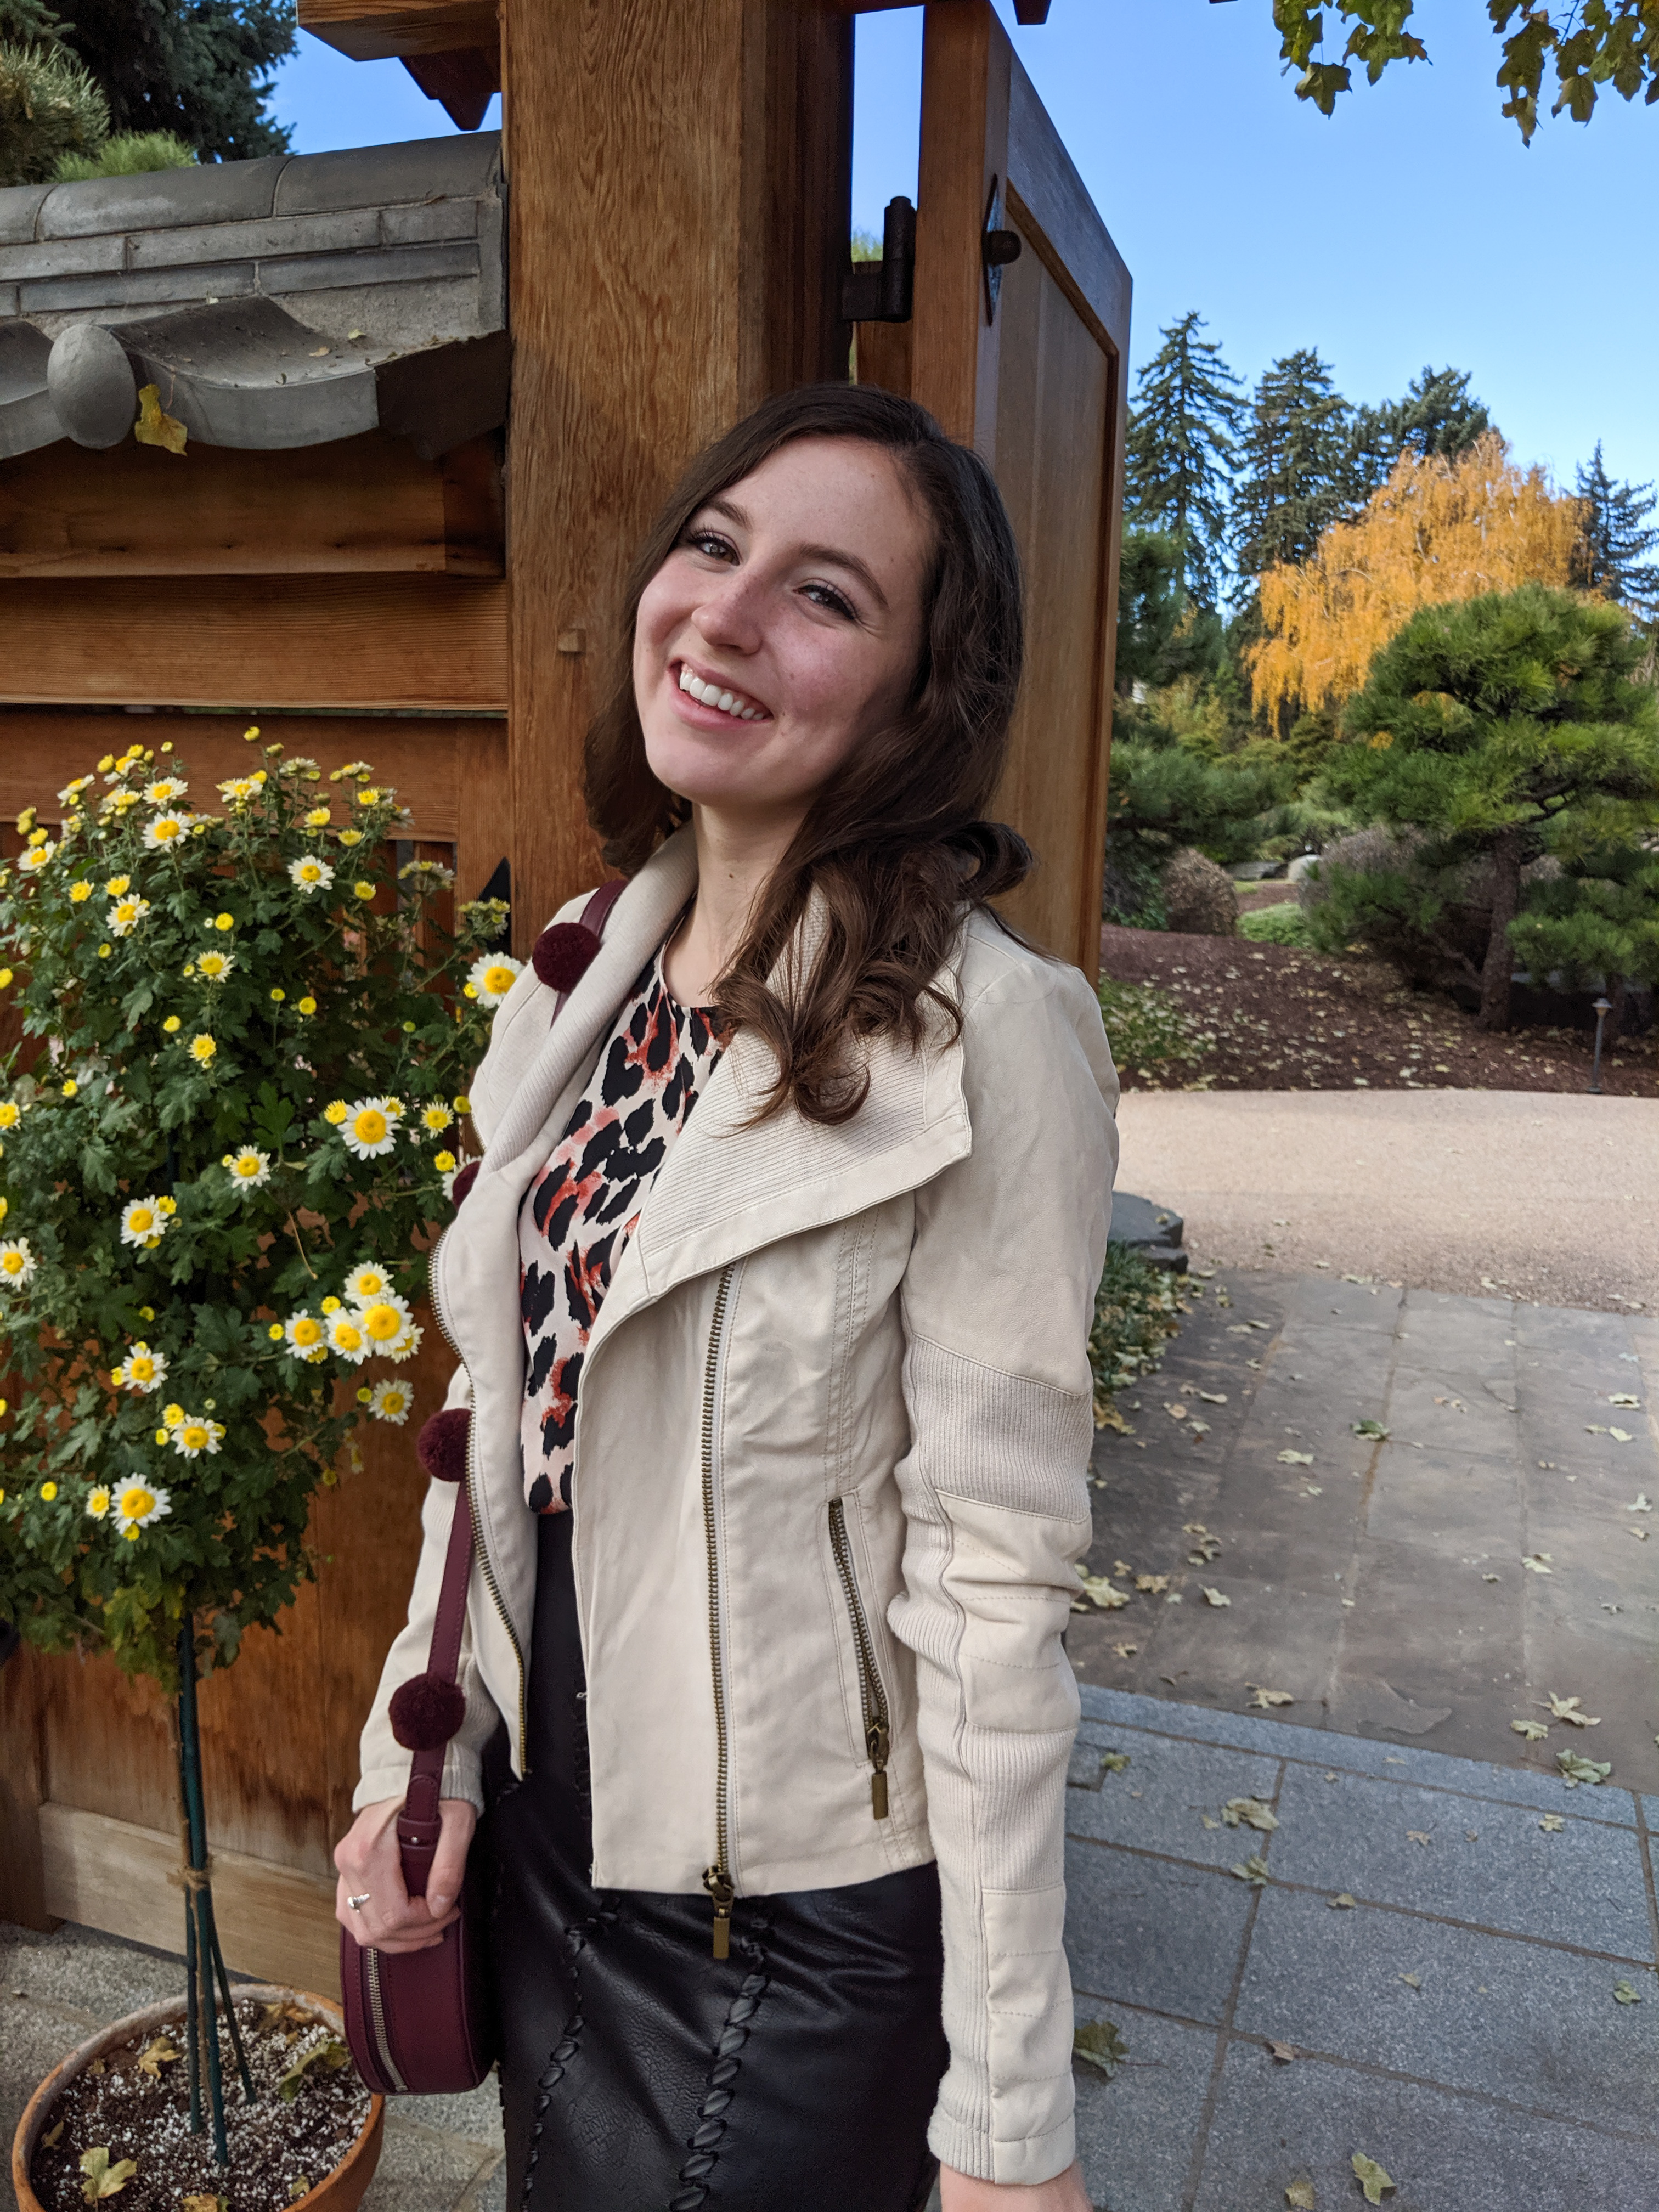 beige jacket, fall outfit, fall layers, Denver fashion blogger